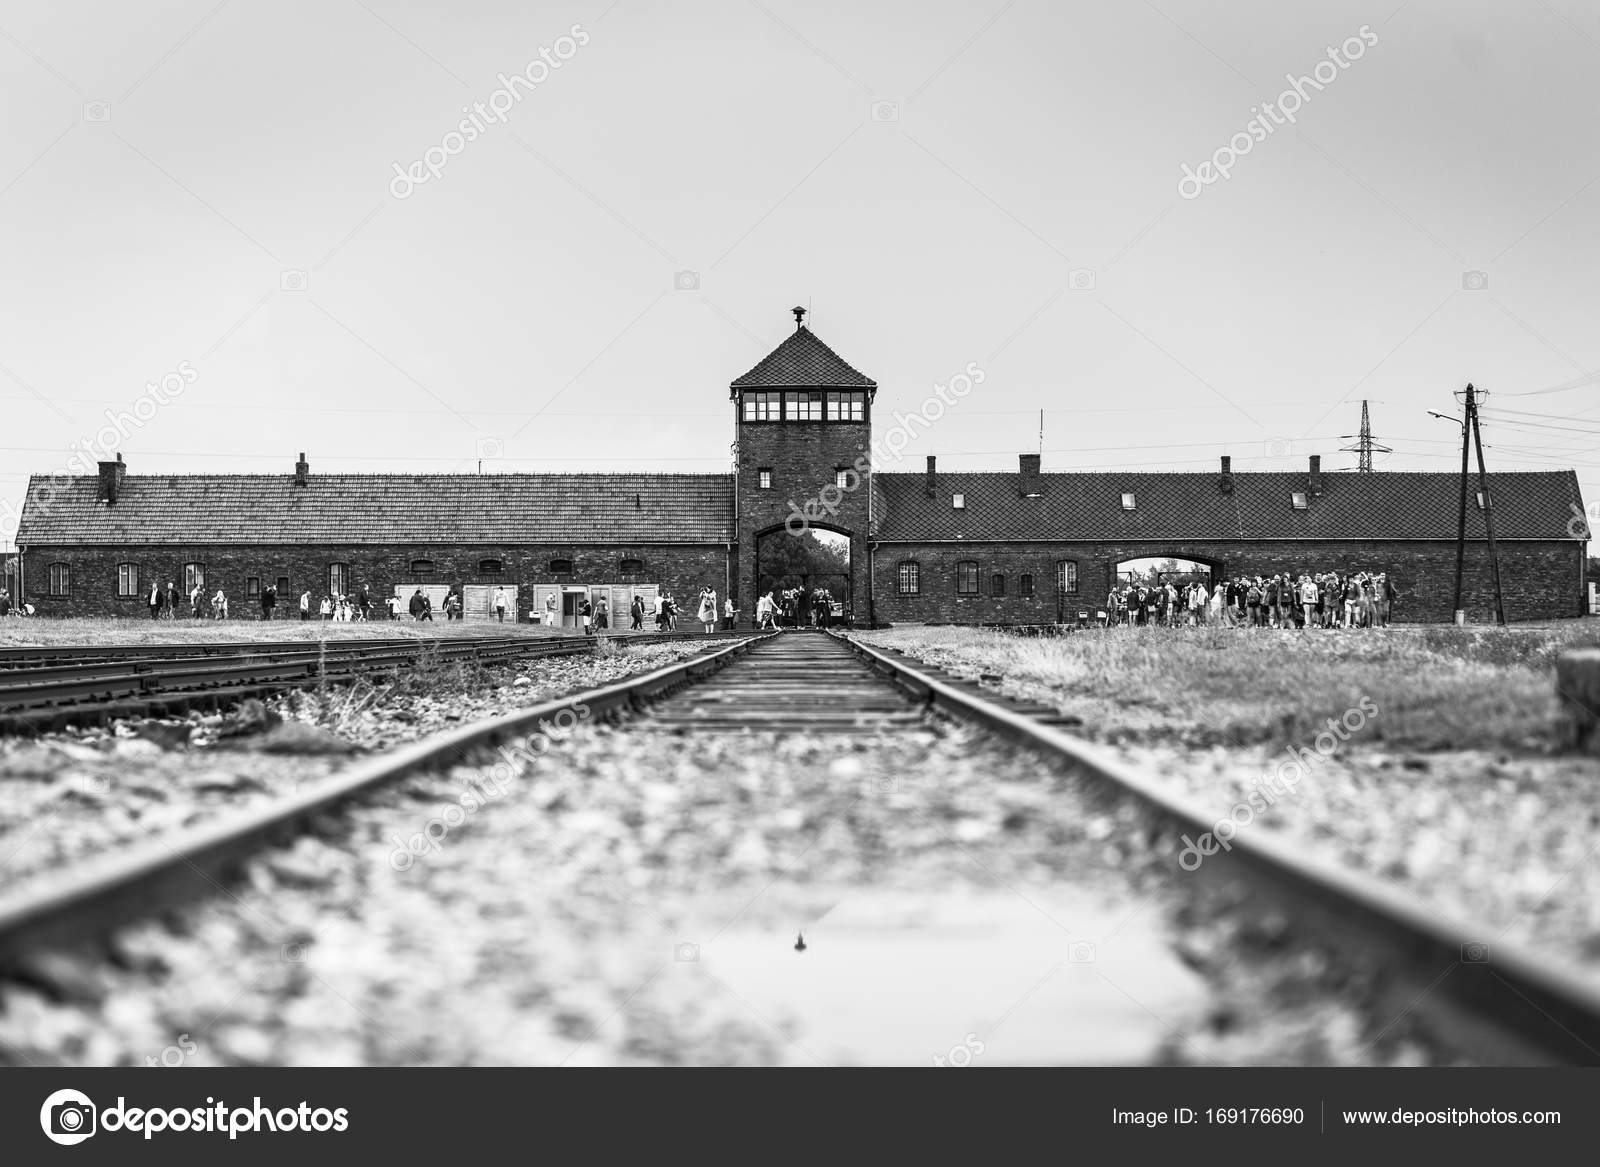 a history of the auschwitz concentration camp in poland Auschwitz-birkenau freight train tracks leading to auschwitz-birkenau, nazi germany's largest concentration camp, near oświęcim, poland dinos michail—istock editorial/thinkstock a group of hungarian jews arriving at the auschwitz-birkenau camp in german-occupied poland.